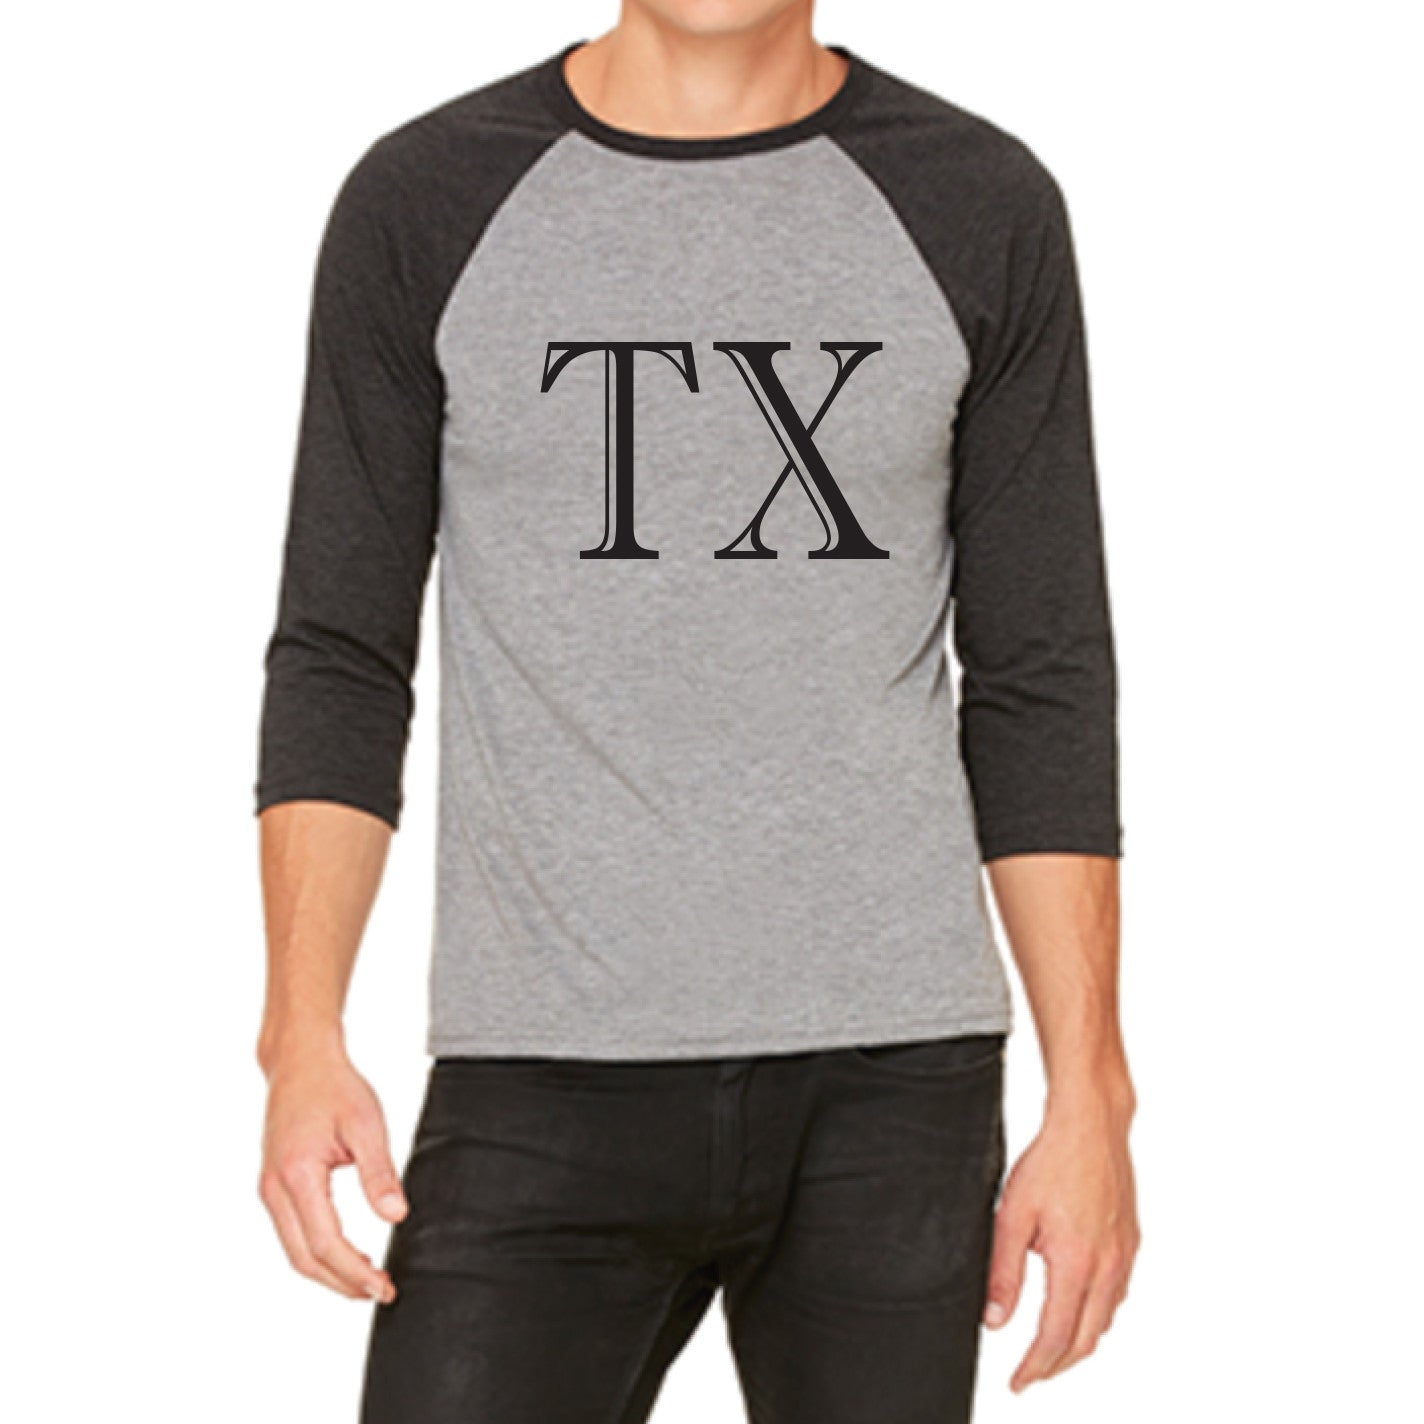 OEM Society Texas Wholesale Men's Raglan Sleeve T-Shirt